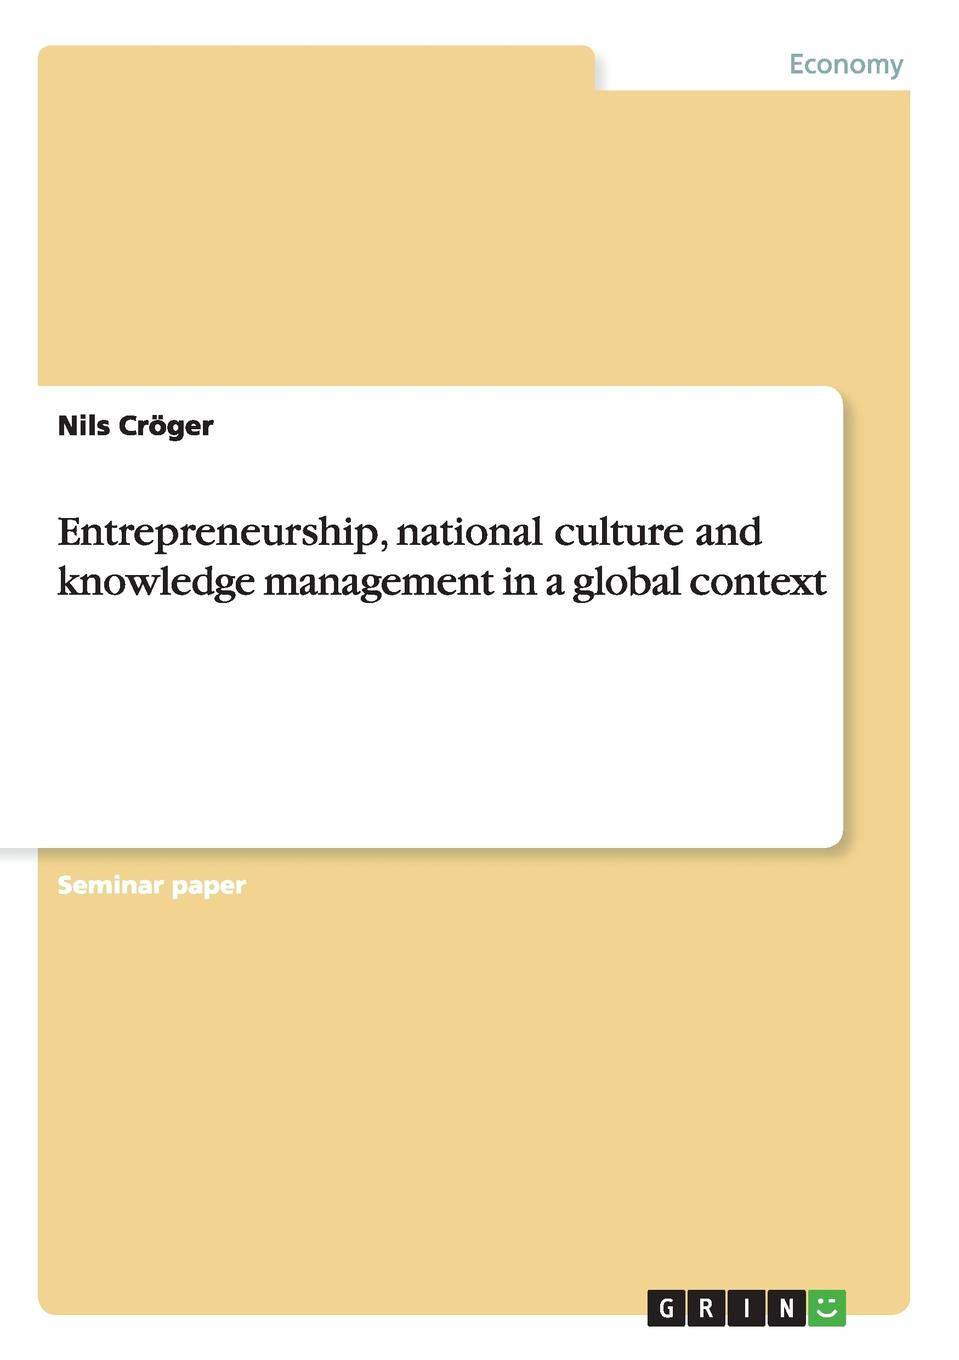 Nils Cröger Entrepreneurship, national culture and knowledge management in a global context